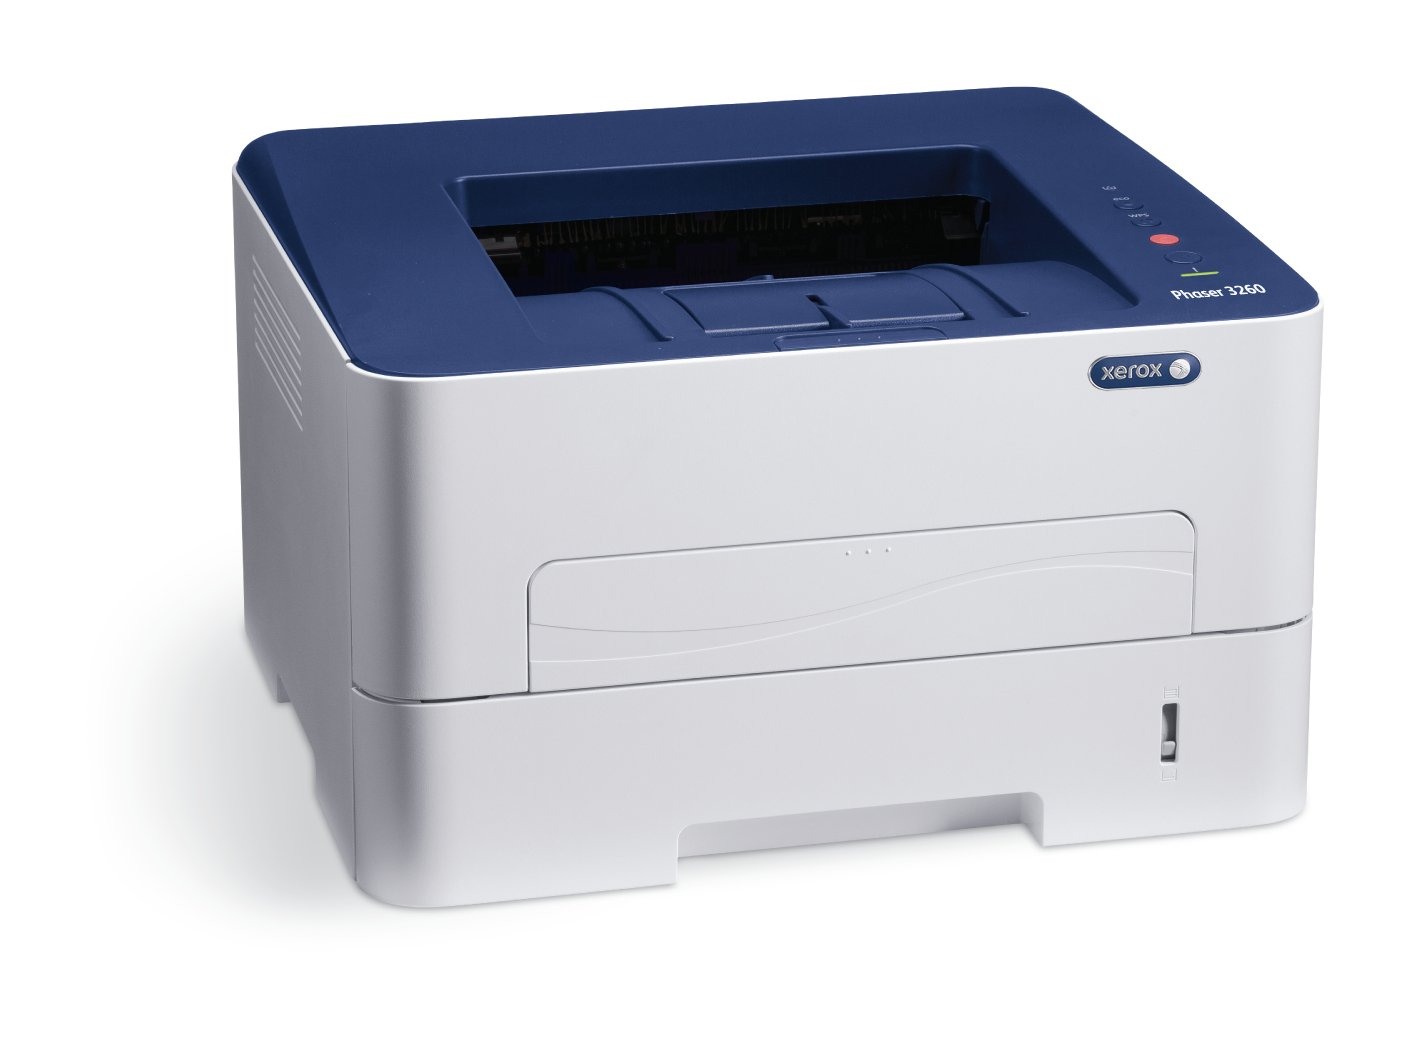 Xerox Phaser 3260/DNI Monchrome Laser Printer - Wireless 3260DNI